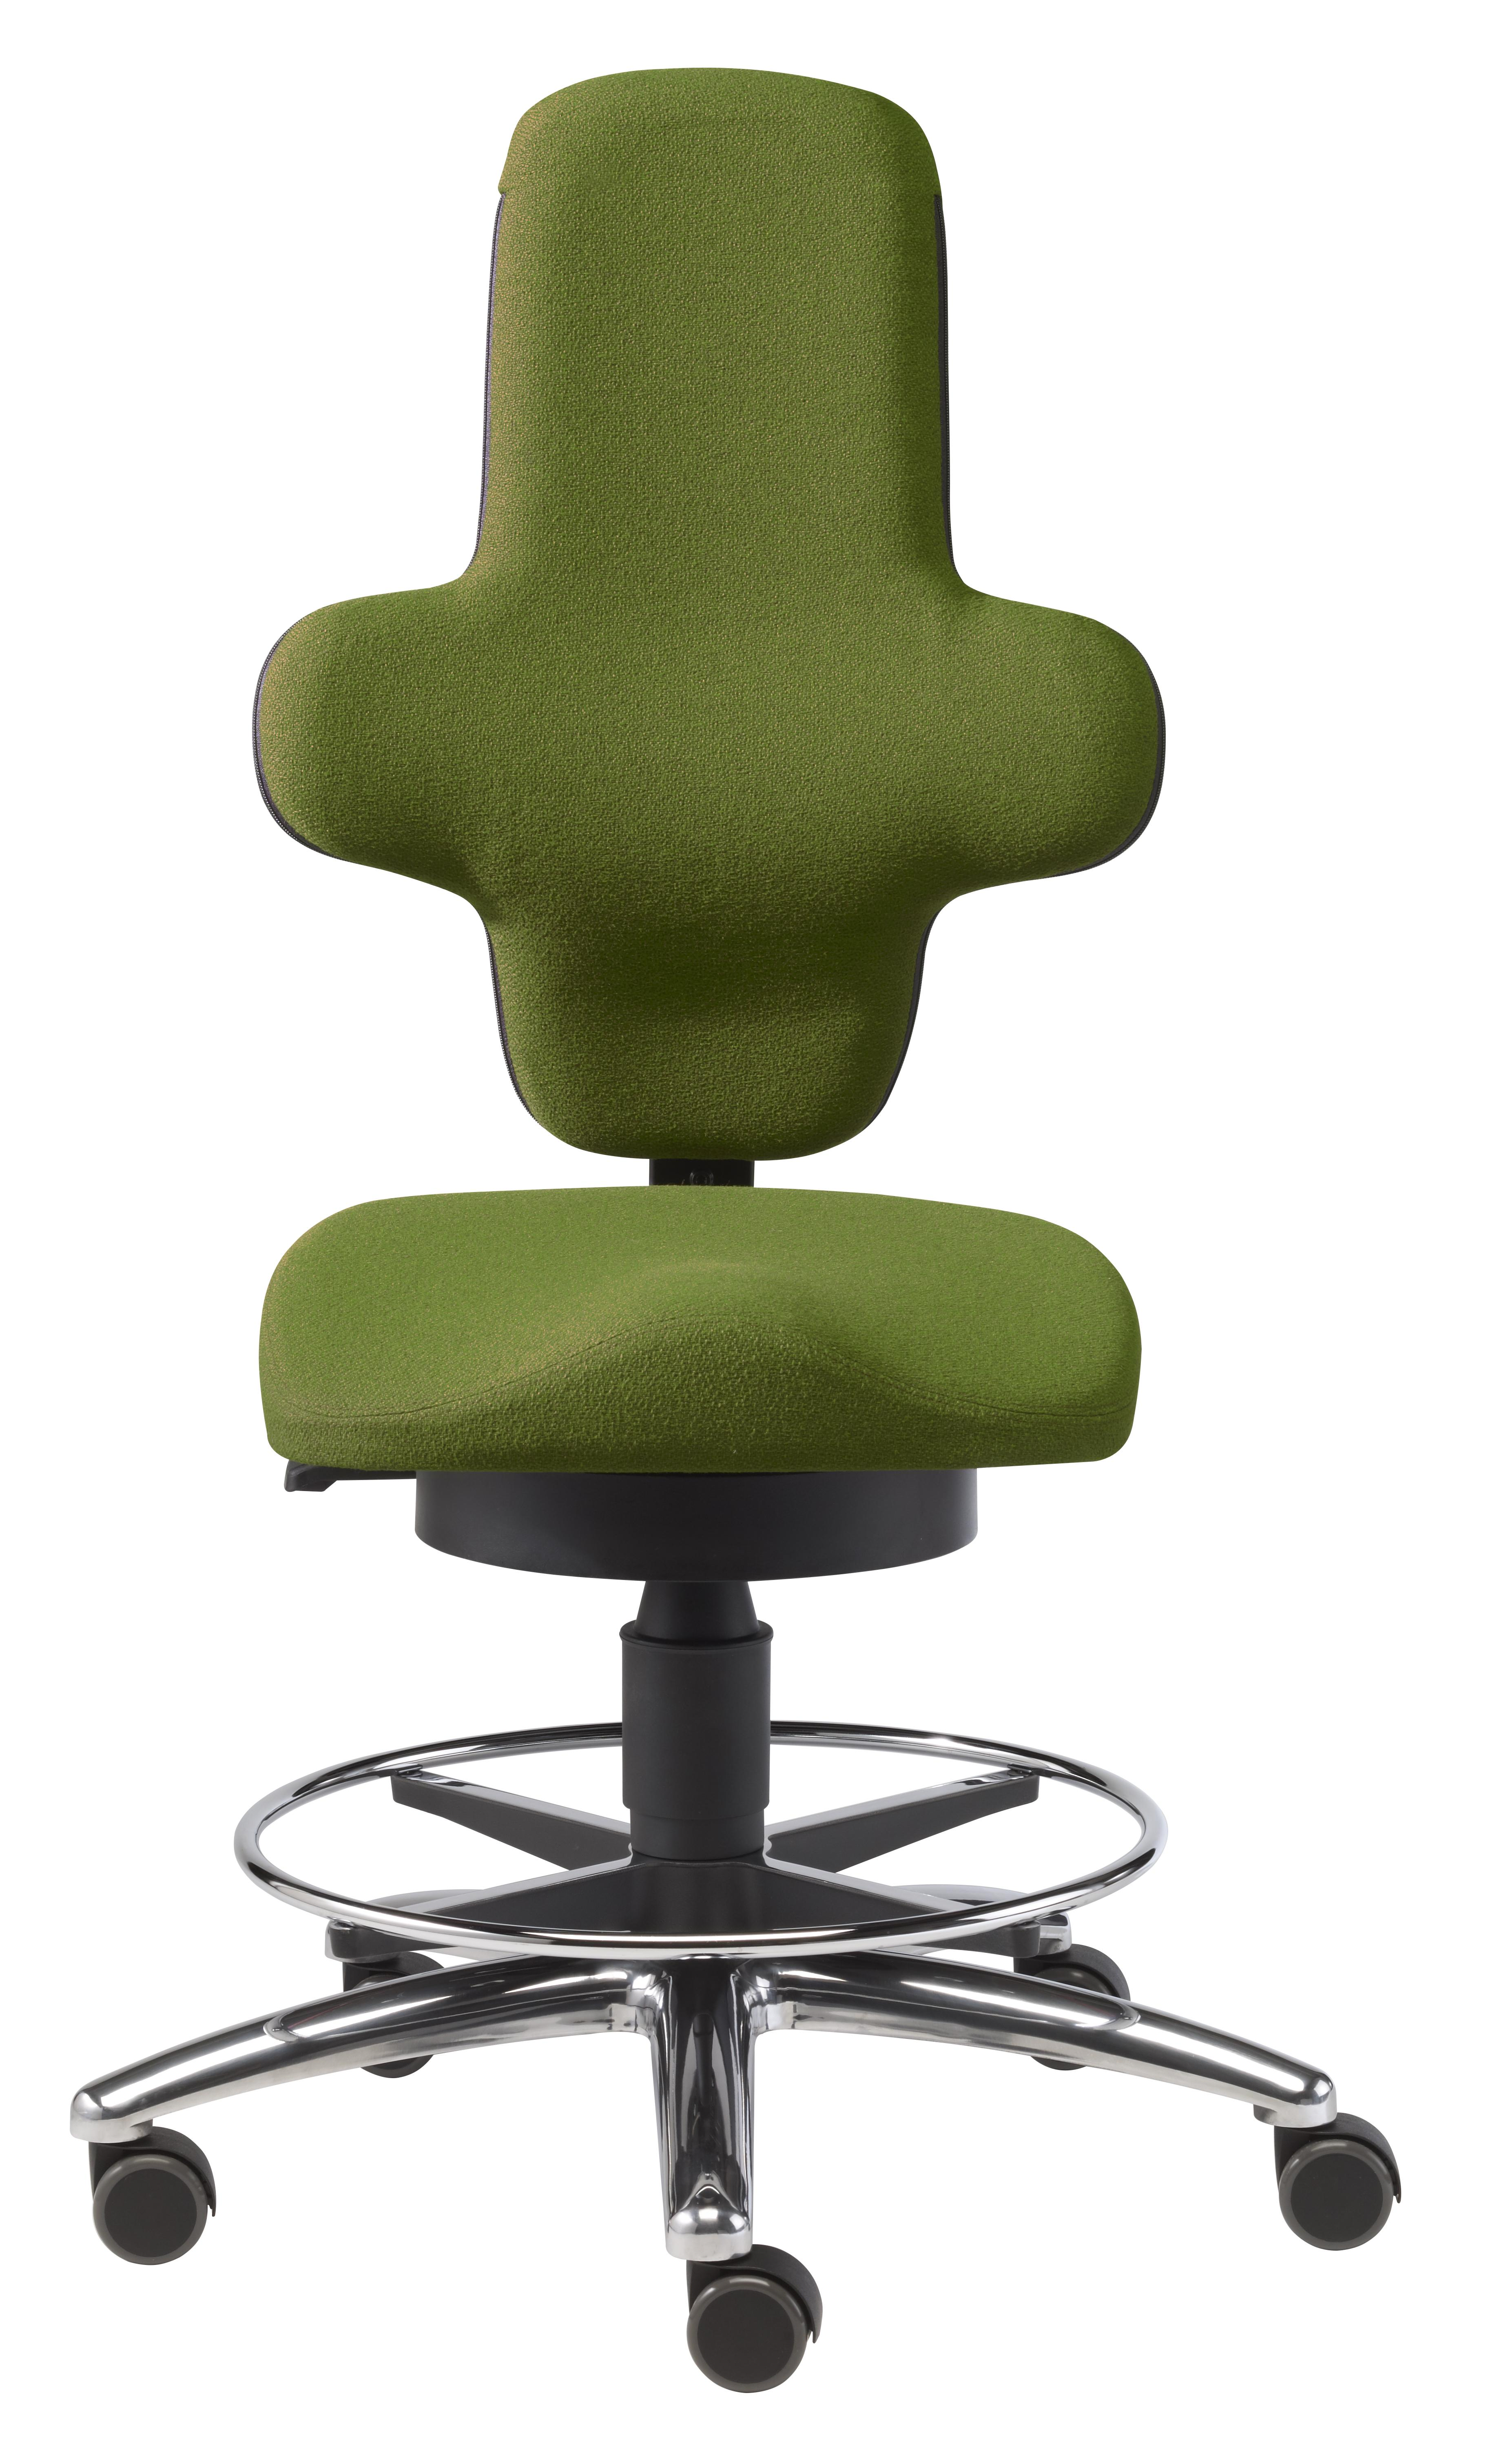 office chairs ergonomic office chairs. Black Bedroom Furniture Sets. Home Design Ideas